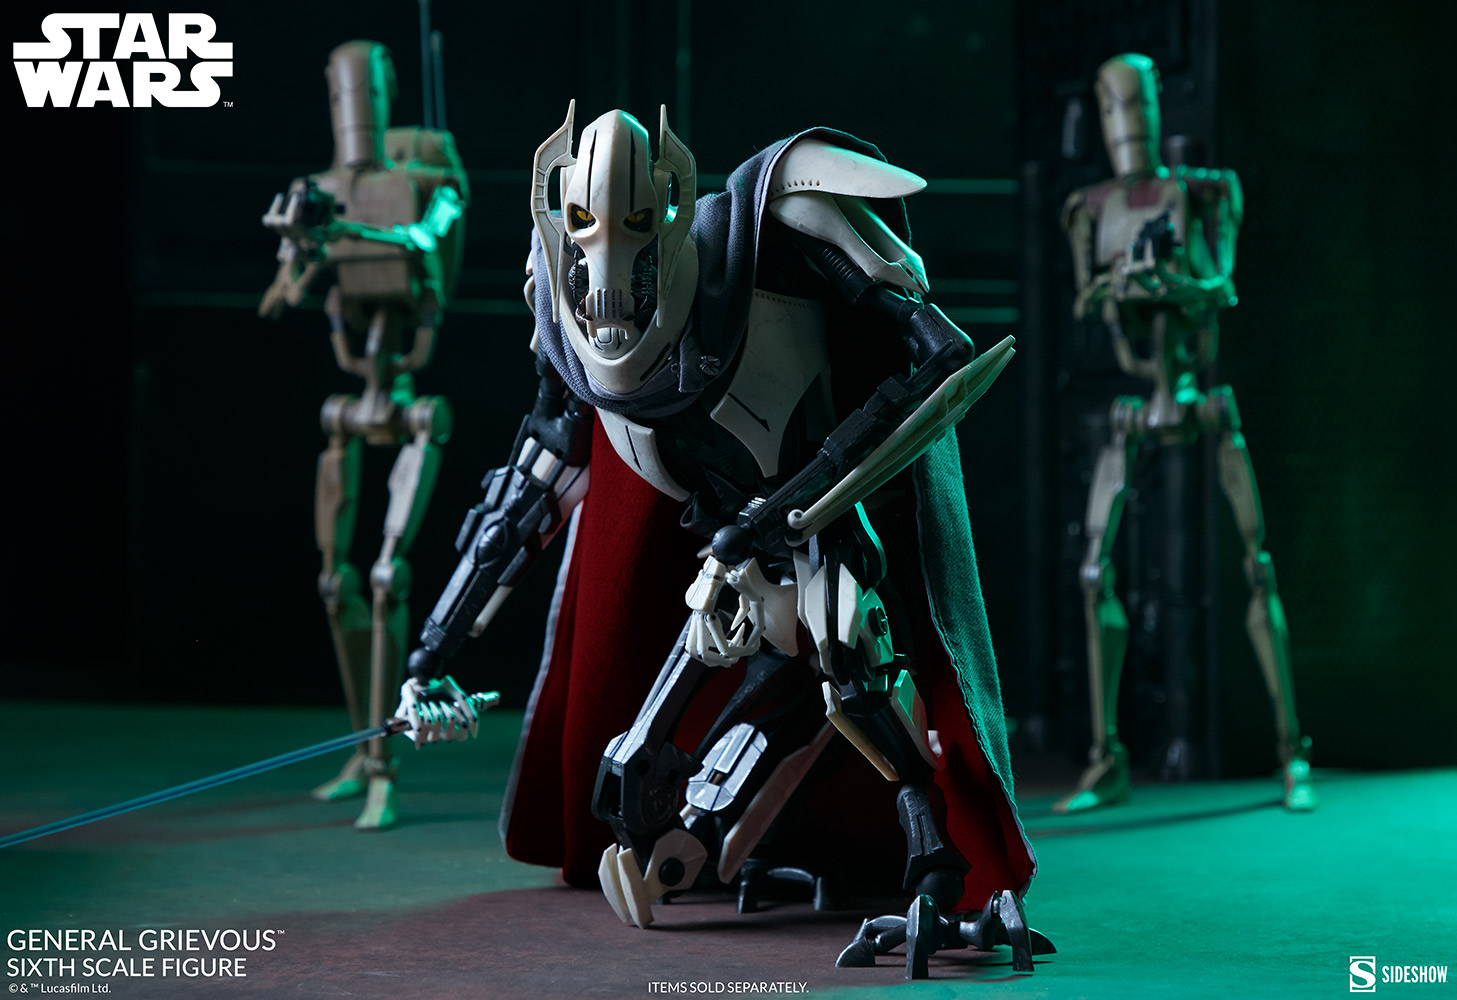 Sideshow Collectibles Star Wars Revenge of the Sith General Grievous 1/6 Scale Figure